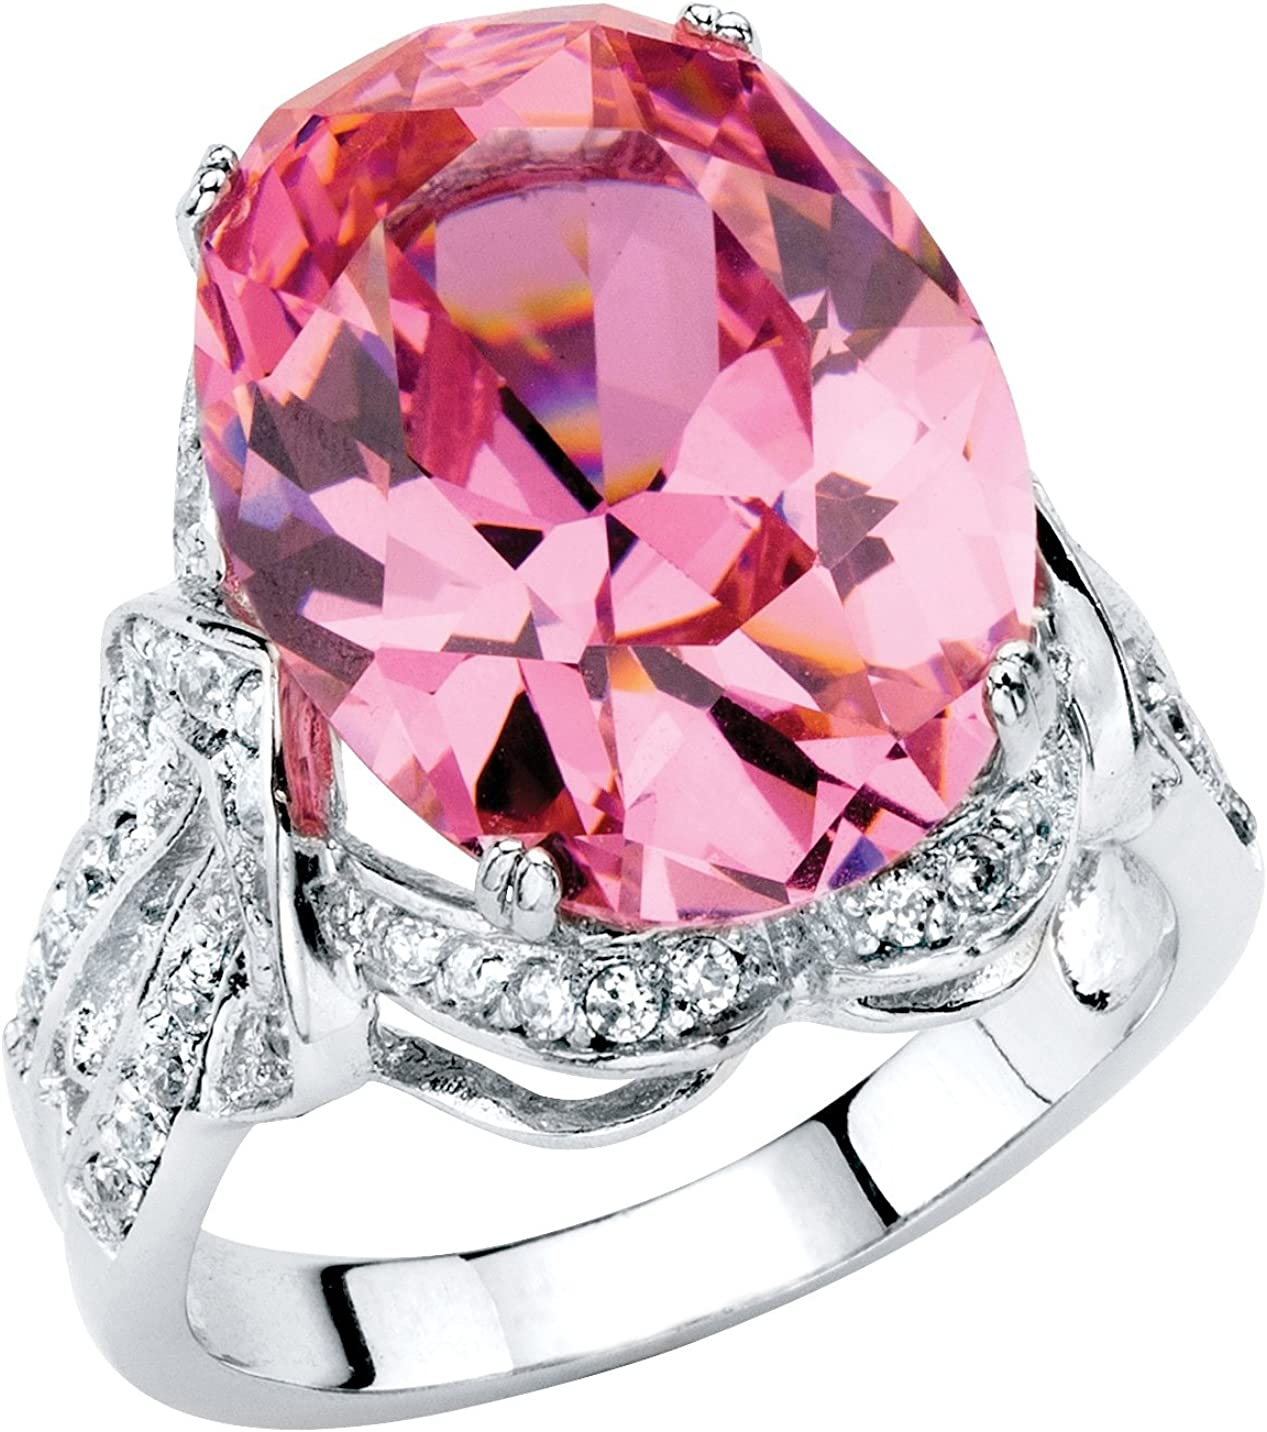 Palm Beach Jewelry Platinum Plated Oval Shaped Pink and Round White Cubic Zirconia Cocktail Ring